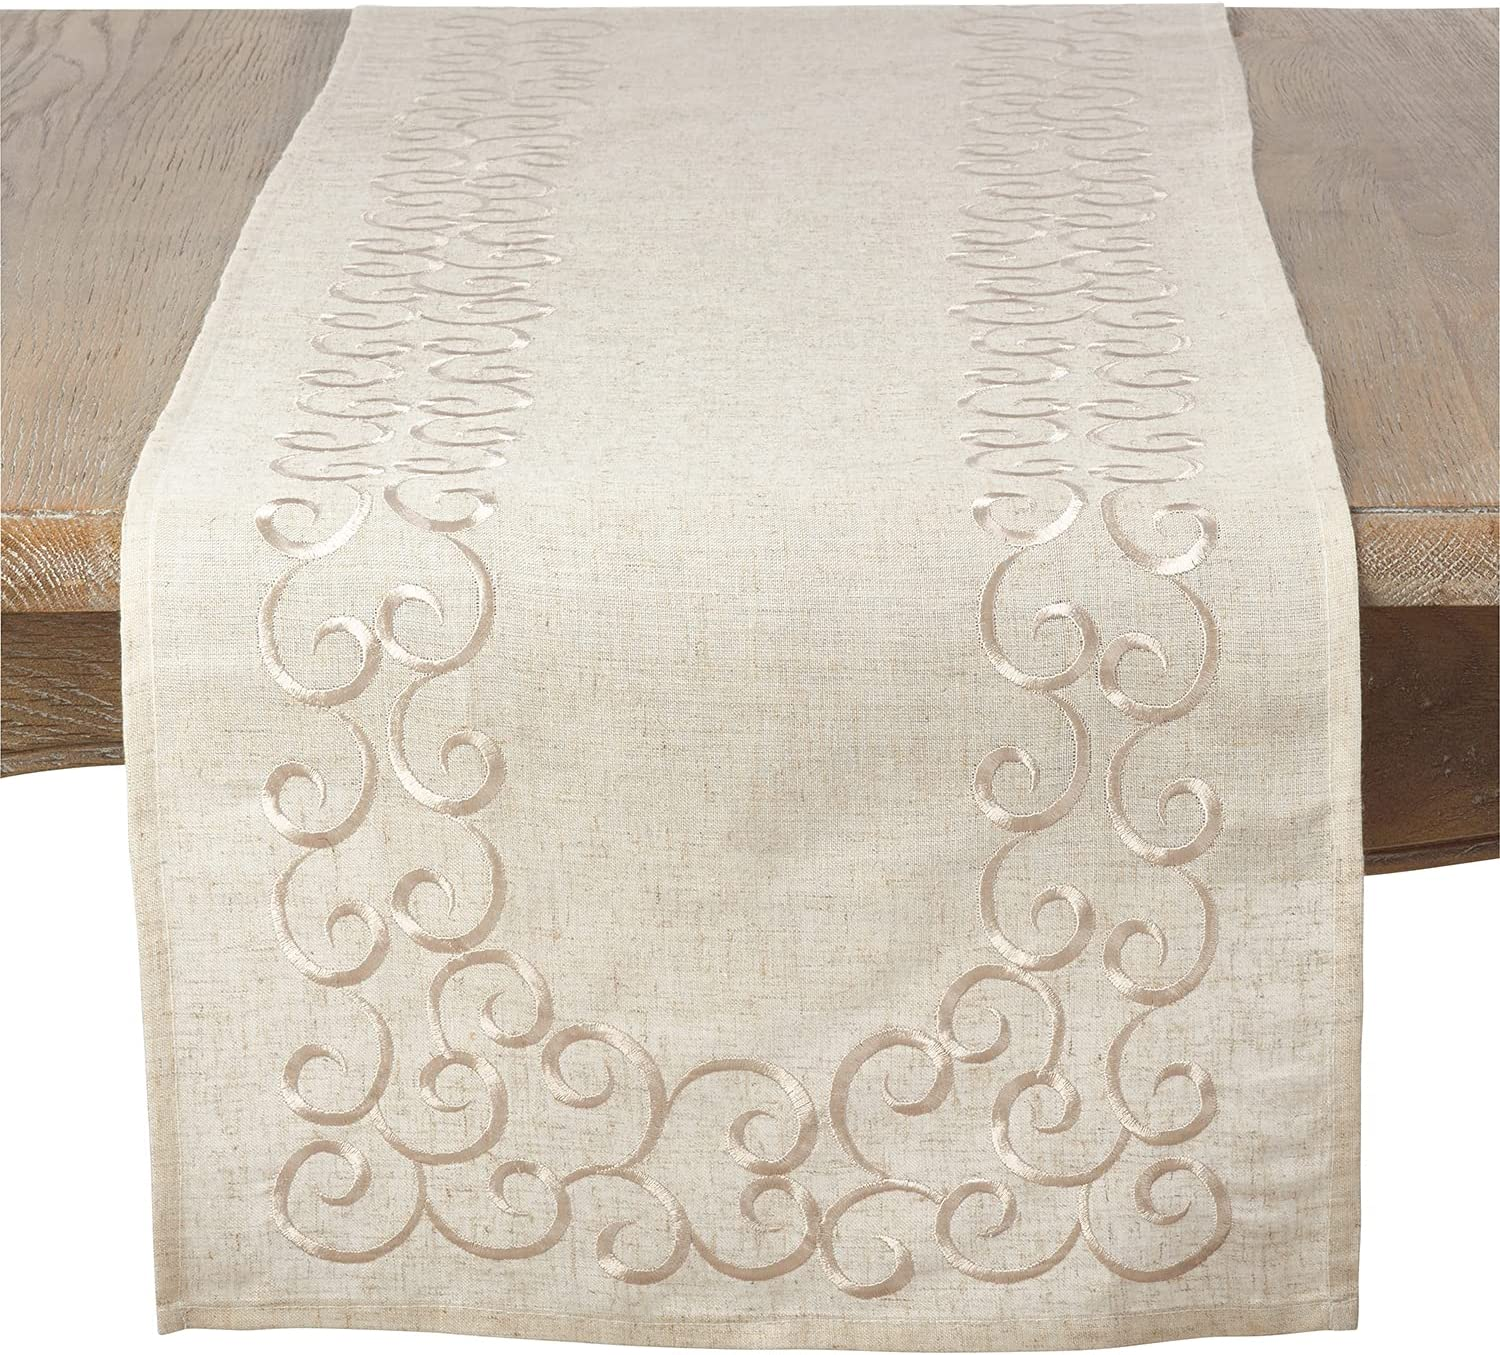 Fennco Max 87% OFF Styles Classic Embroidery Max 52% OFF Scroll Blend Linen 16 Border x